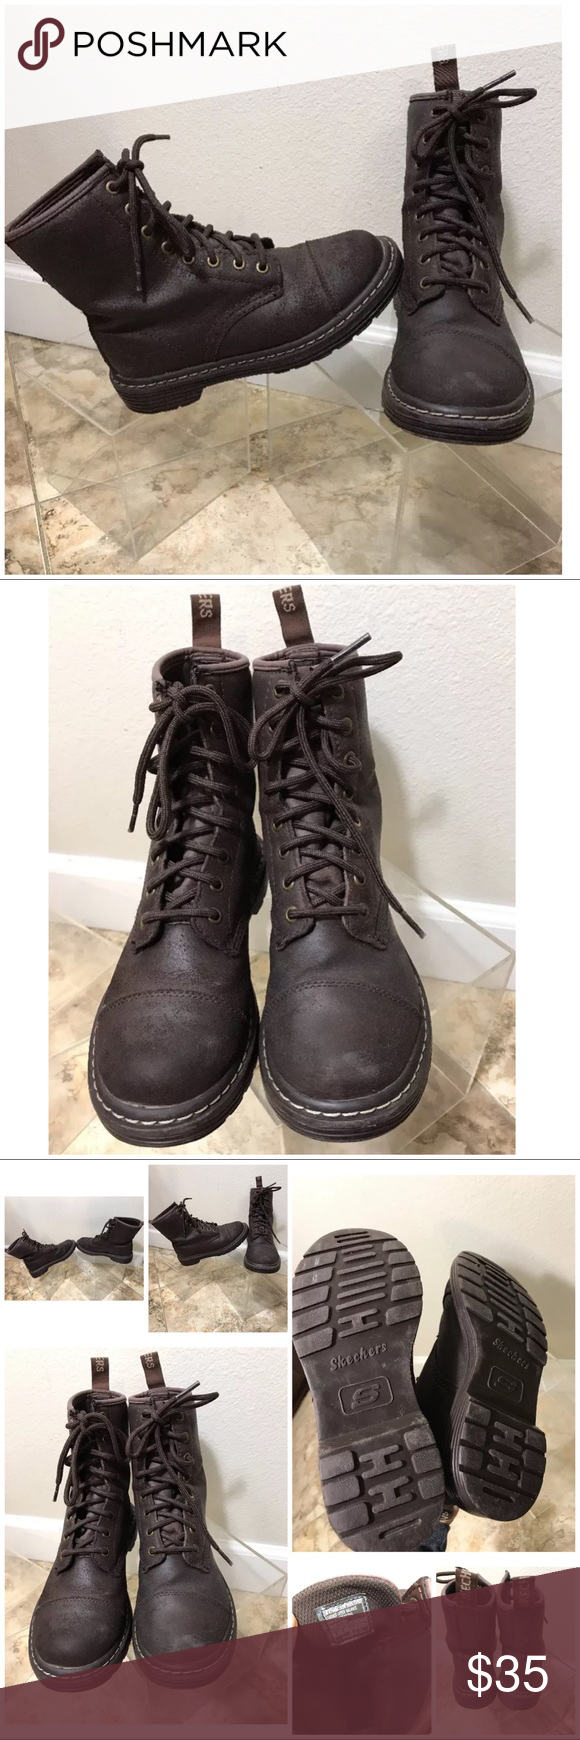 brown leather boots 5.5